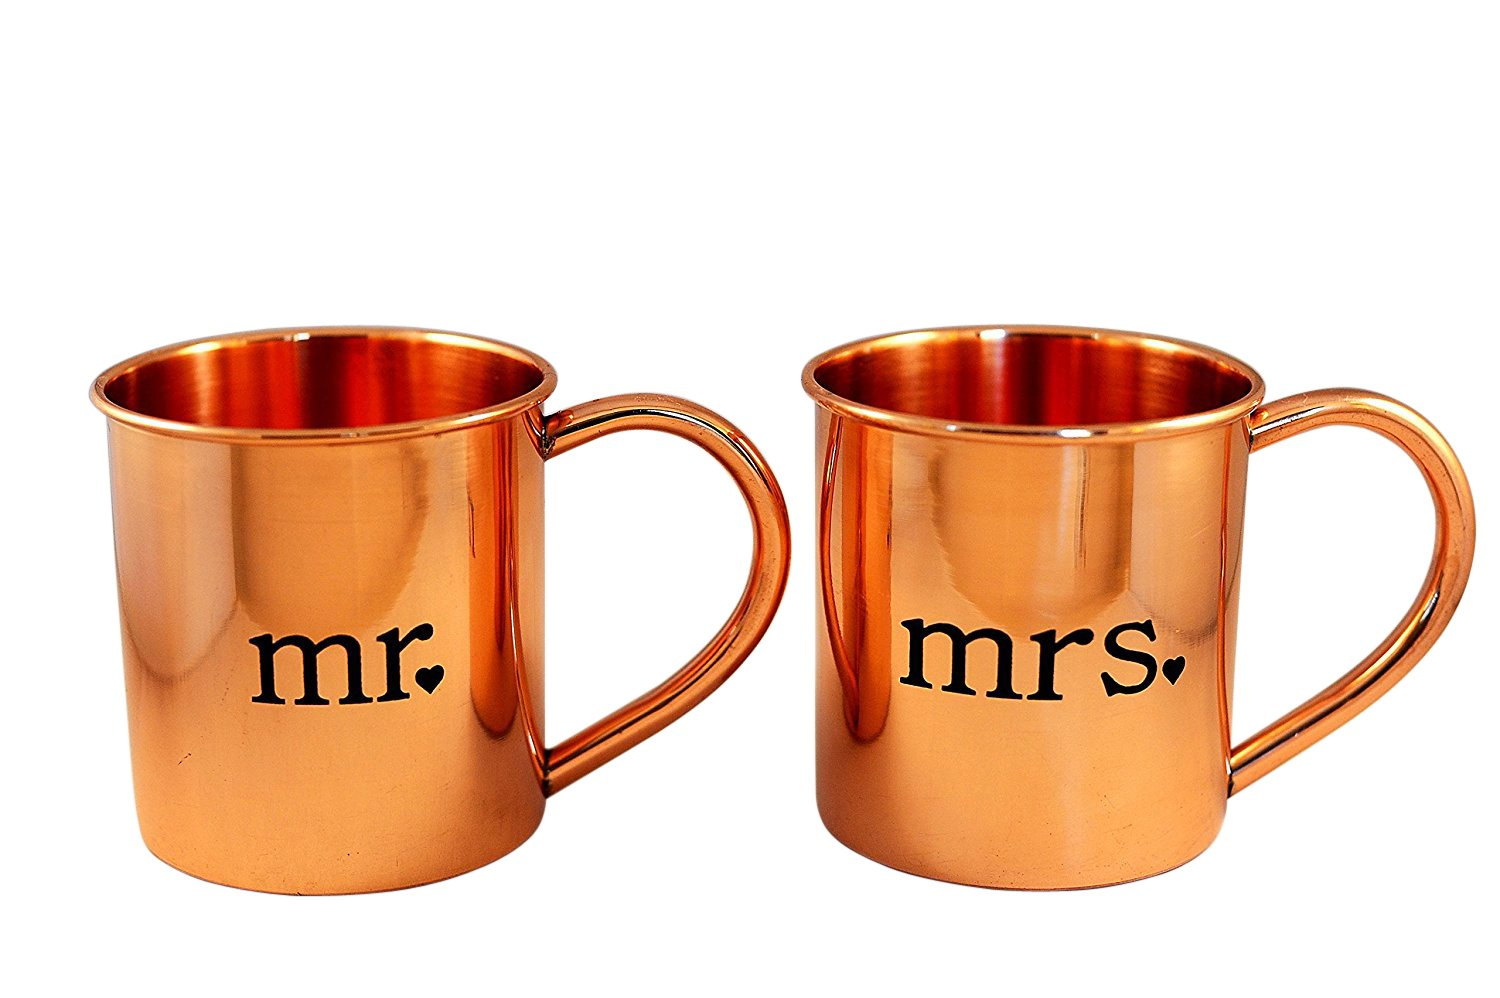 Mr. and Mrs. Copper Mugs for Moscow Mules - 100% pure copper by Alchemade